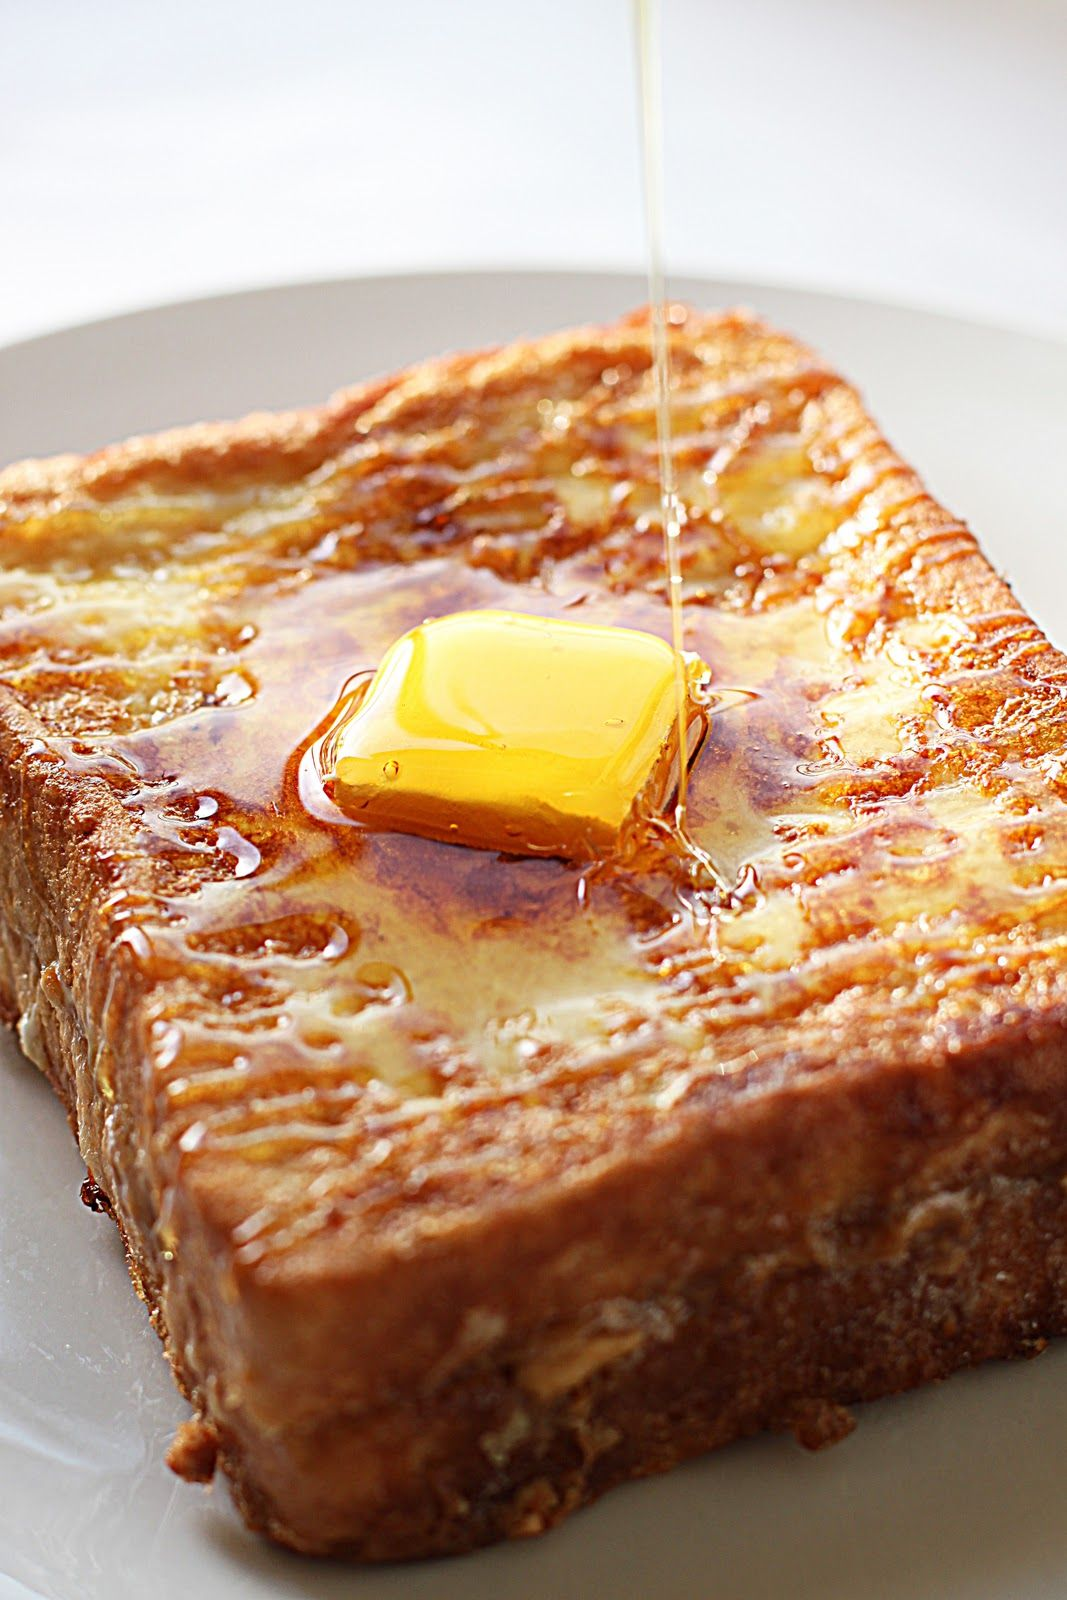 Fr ench toast is one of those things I never ever used a recipe, had it all the time in cha chaan teng  when i was little.   Ingredients:  ...